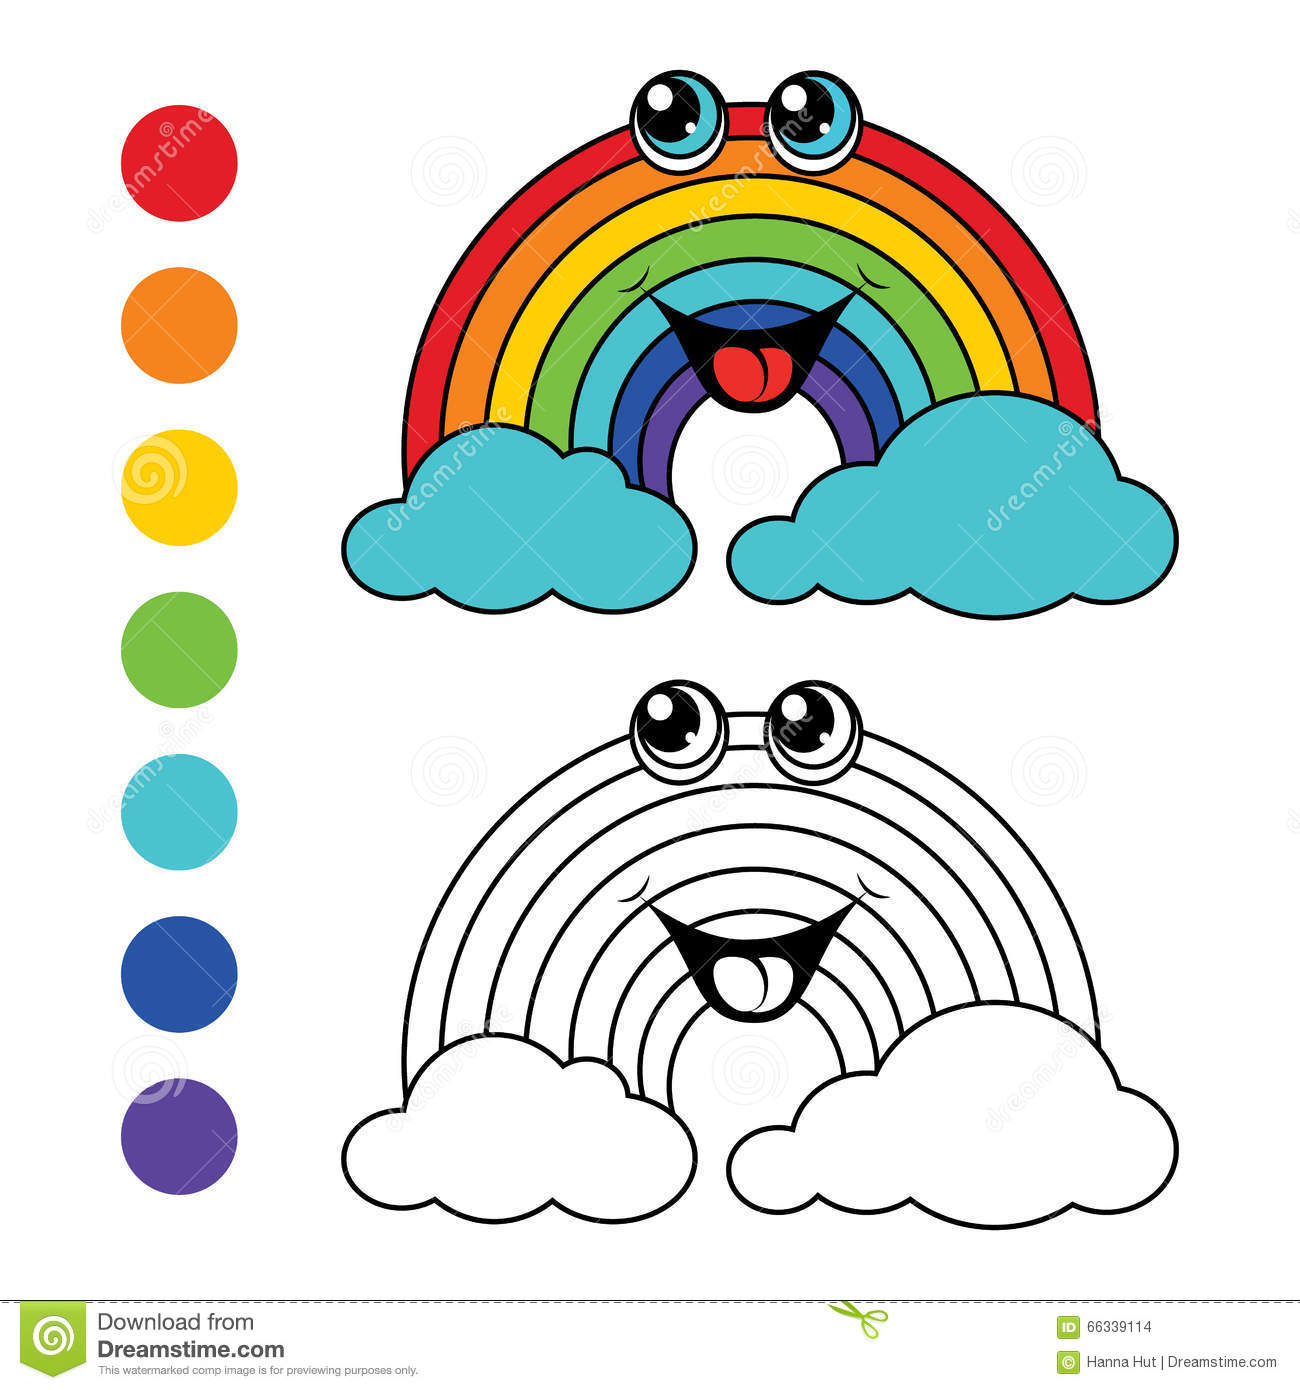 coloring book rainbow kids layout for game illustration 66339114